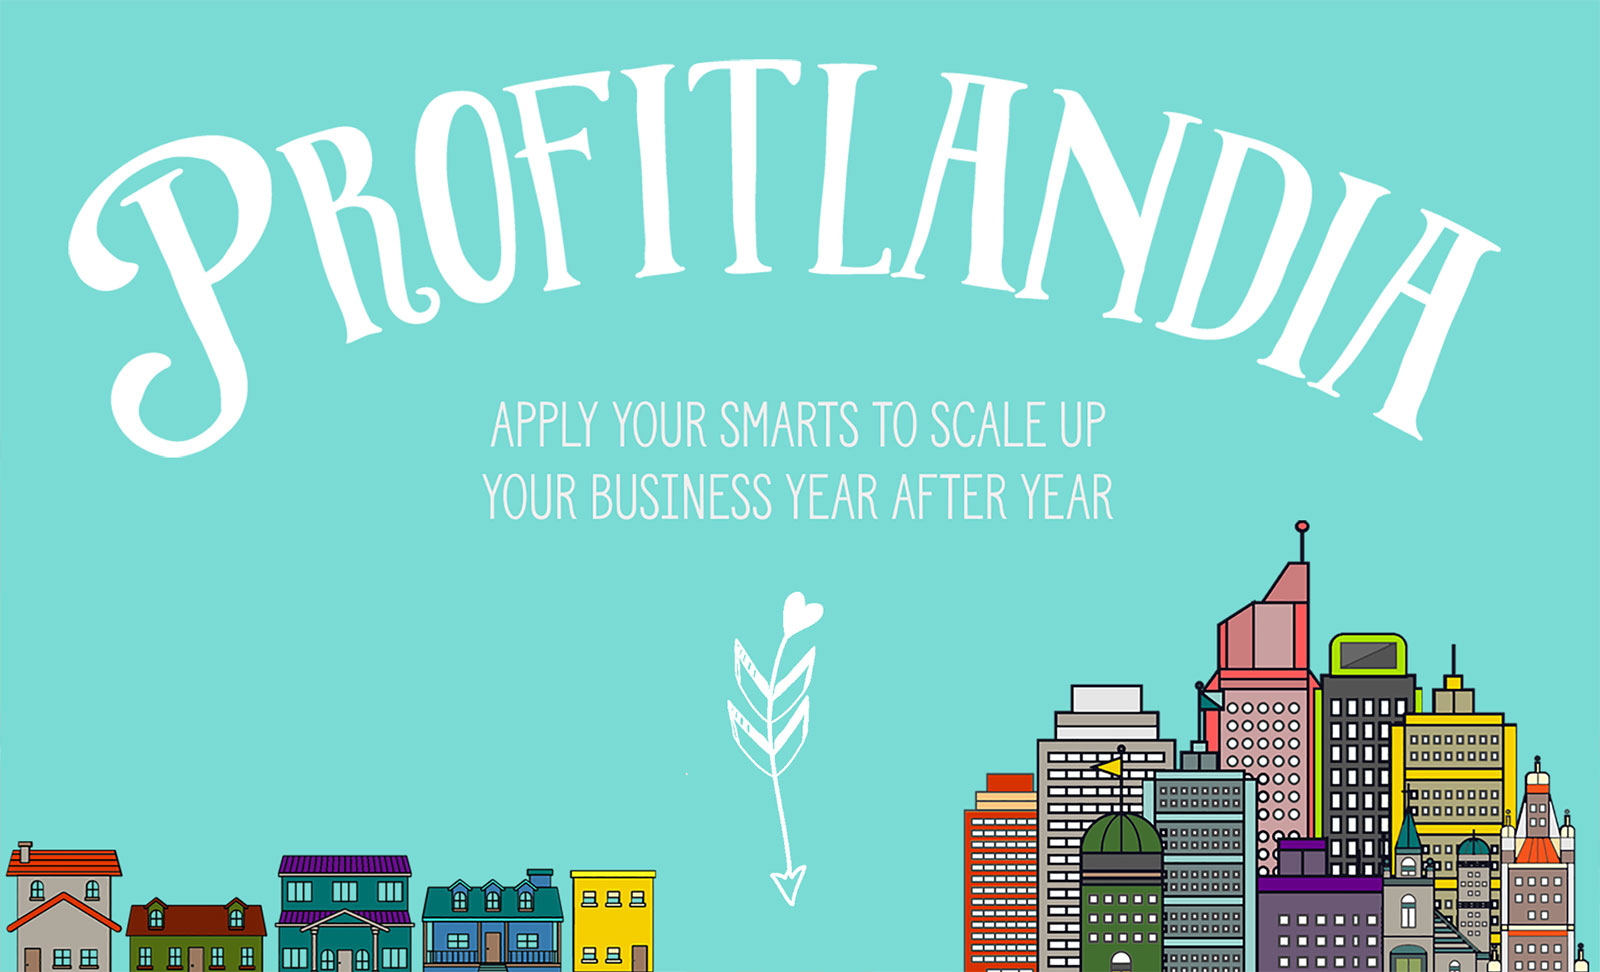 Profitlandia Fun Learning Game For Small Business Owners La